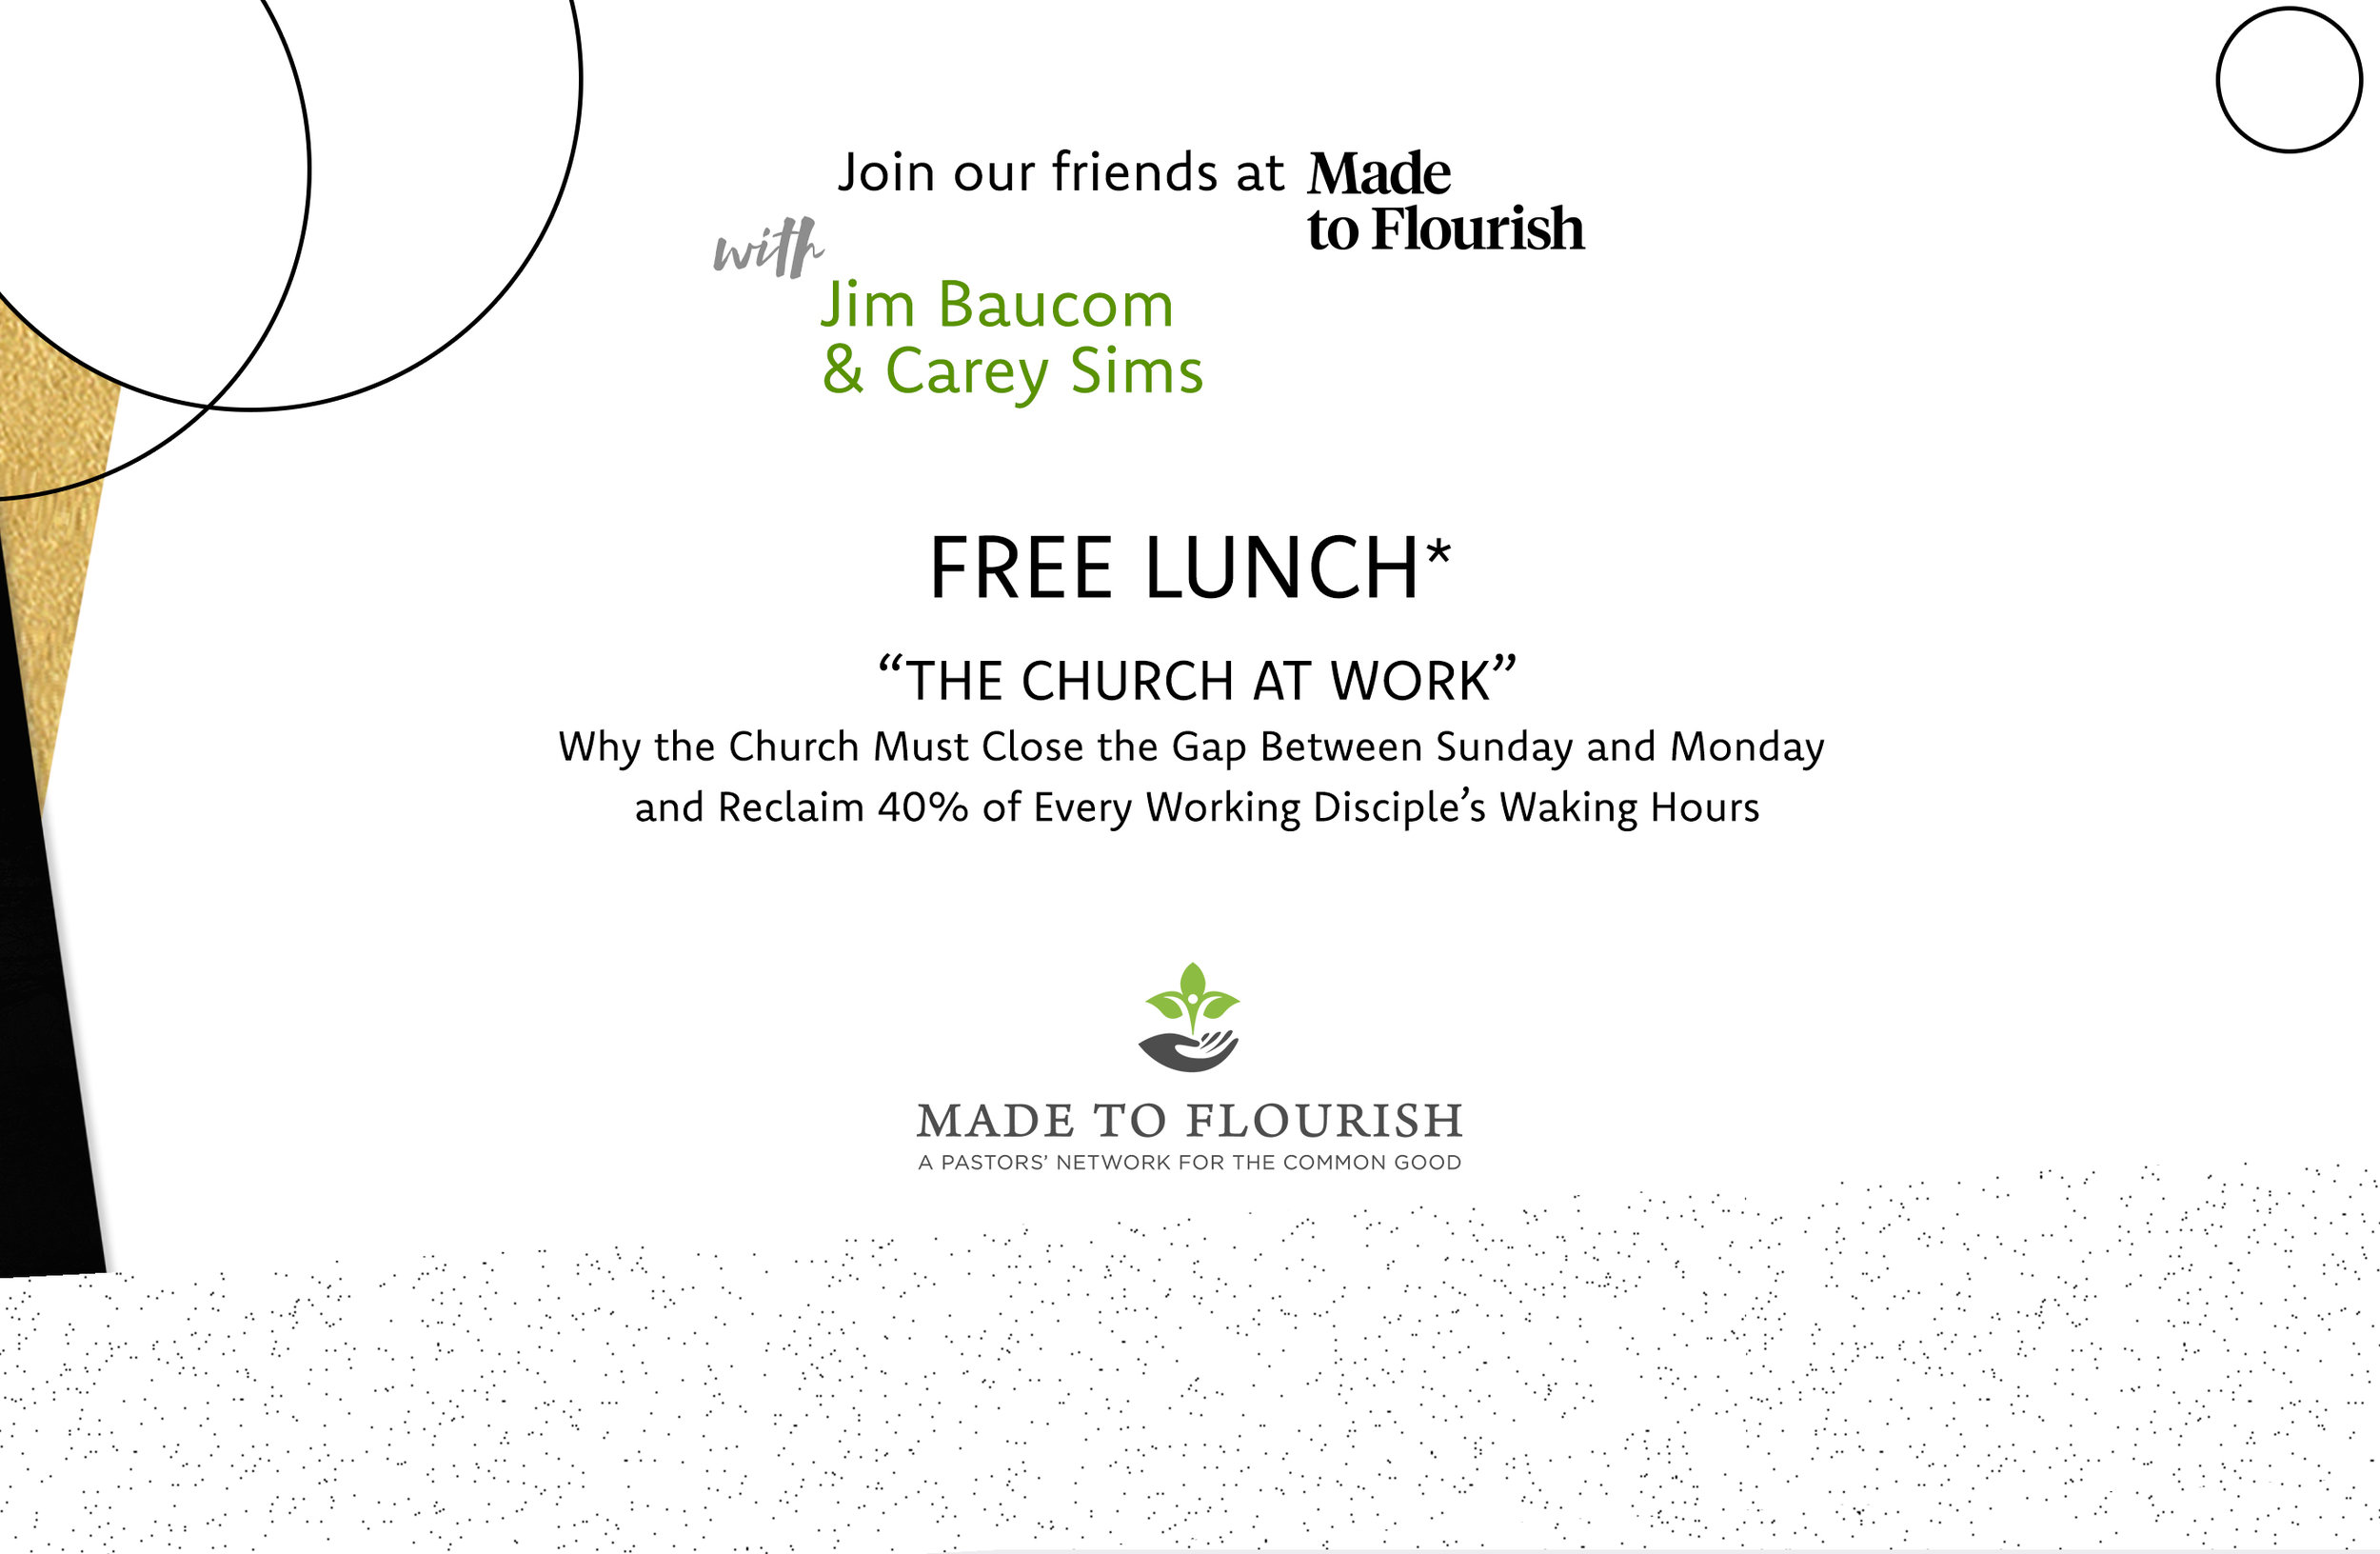 """LUNCH WITH MADE TO FLOURISH: friday, march 29 at 12:30pm - Over the past three decades, a """"Faith at Work"""" movement has been sweeping North America, spurred by laity leading Bible studies in their workplaces and joining other Christ-followers seeking to express their faith through their labor.With some notable exceptions, local churches have been largely absent from the conversation. Though the typical working Christian spends 40% of her or his waking hours at work, few churches consider the marketplace in their discipleship strategies. This is not only unbiblical, but also tragic, because faithful workers are eager to understand how they serve God by contributing to the """"common good,"""" and many are looking for churches and leaders whose theologies of vocation extend beyond the clergy.If you are a pastor interested in building Faith, Work, and Economics into your church's discipleship paradigm, this luncheon is for you.Register through the Awakenings' Ticket Site, choosing """"Made To Flourish Lunch.""""Come get a great meal and hear from those who are working with entrepreneurs, business leaders, and pastors to turn the church inside out.*Free and limited to the first 60 people to register.LocationThe Wharf119 King StreetOld Town Alexandria, VA 22314View Map"""